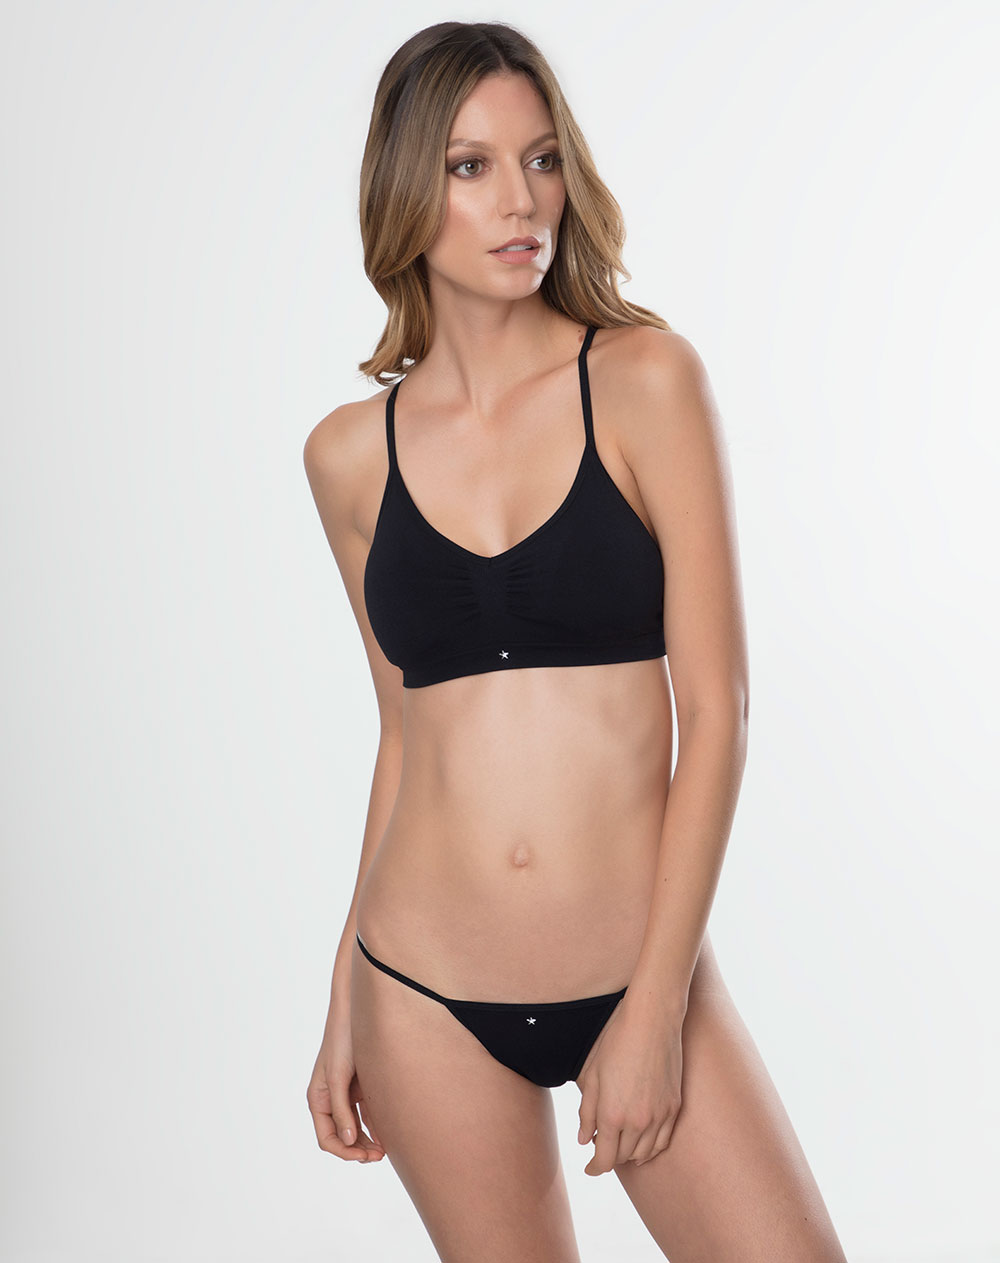 Panty de mujer sssh bloom negro intenso suaves fibras for Ropa interior punto blanco